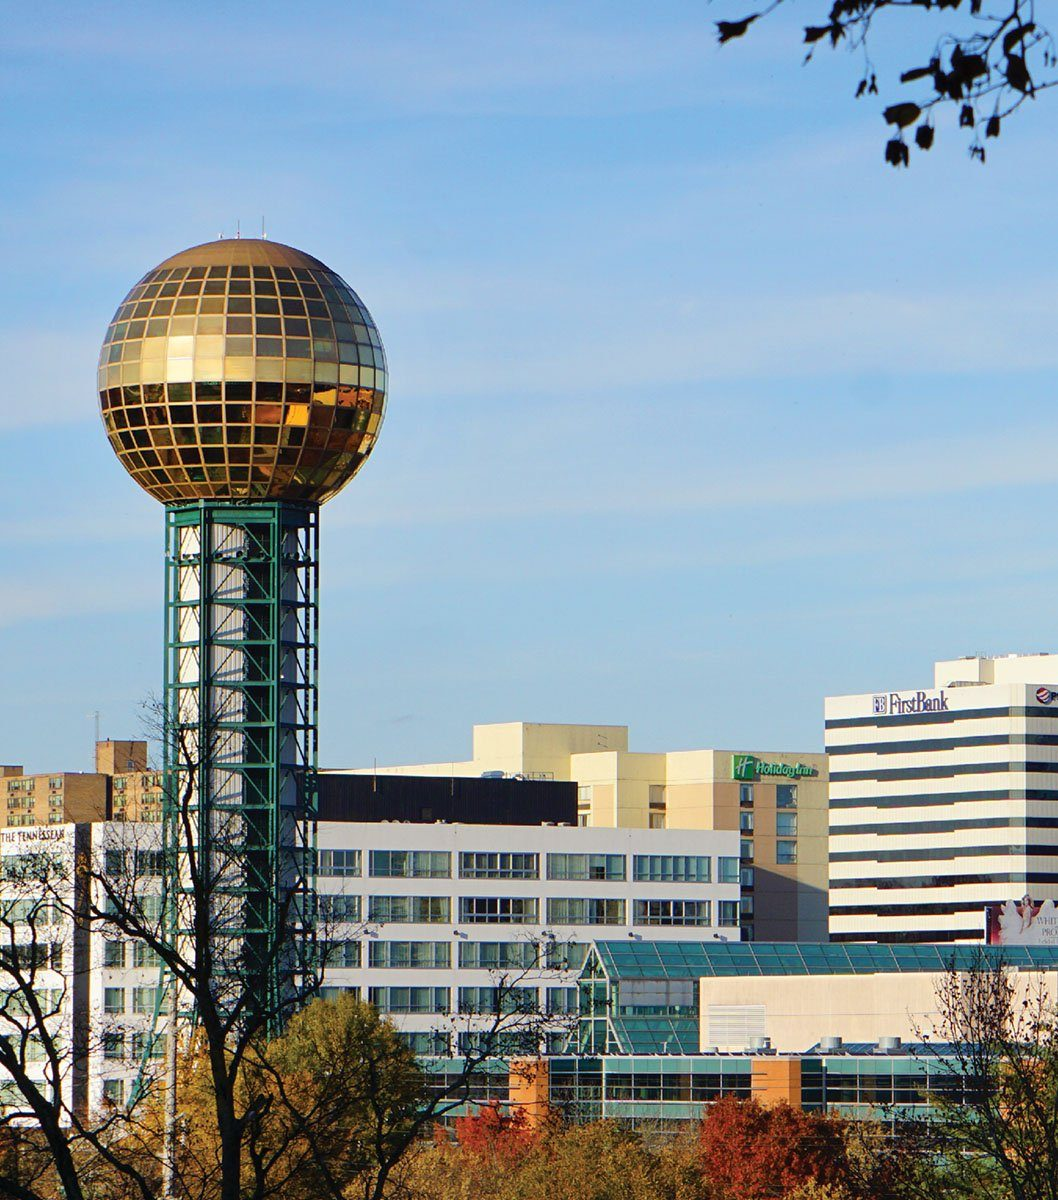 The Knoxville sun sphere